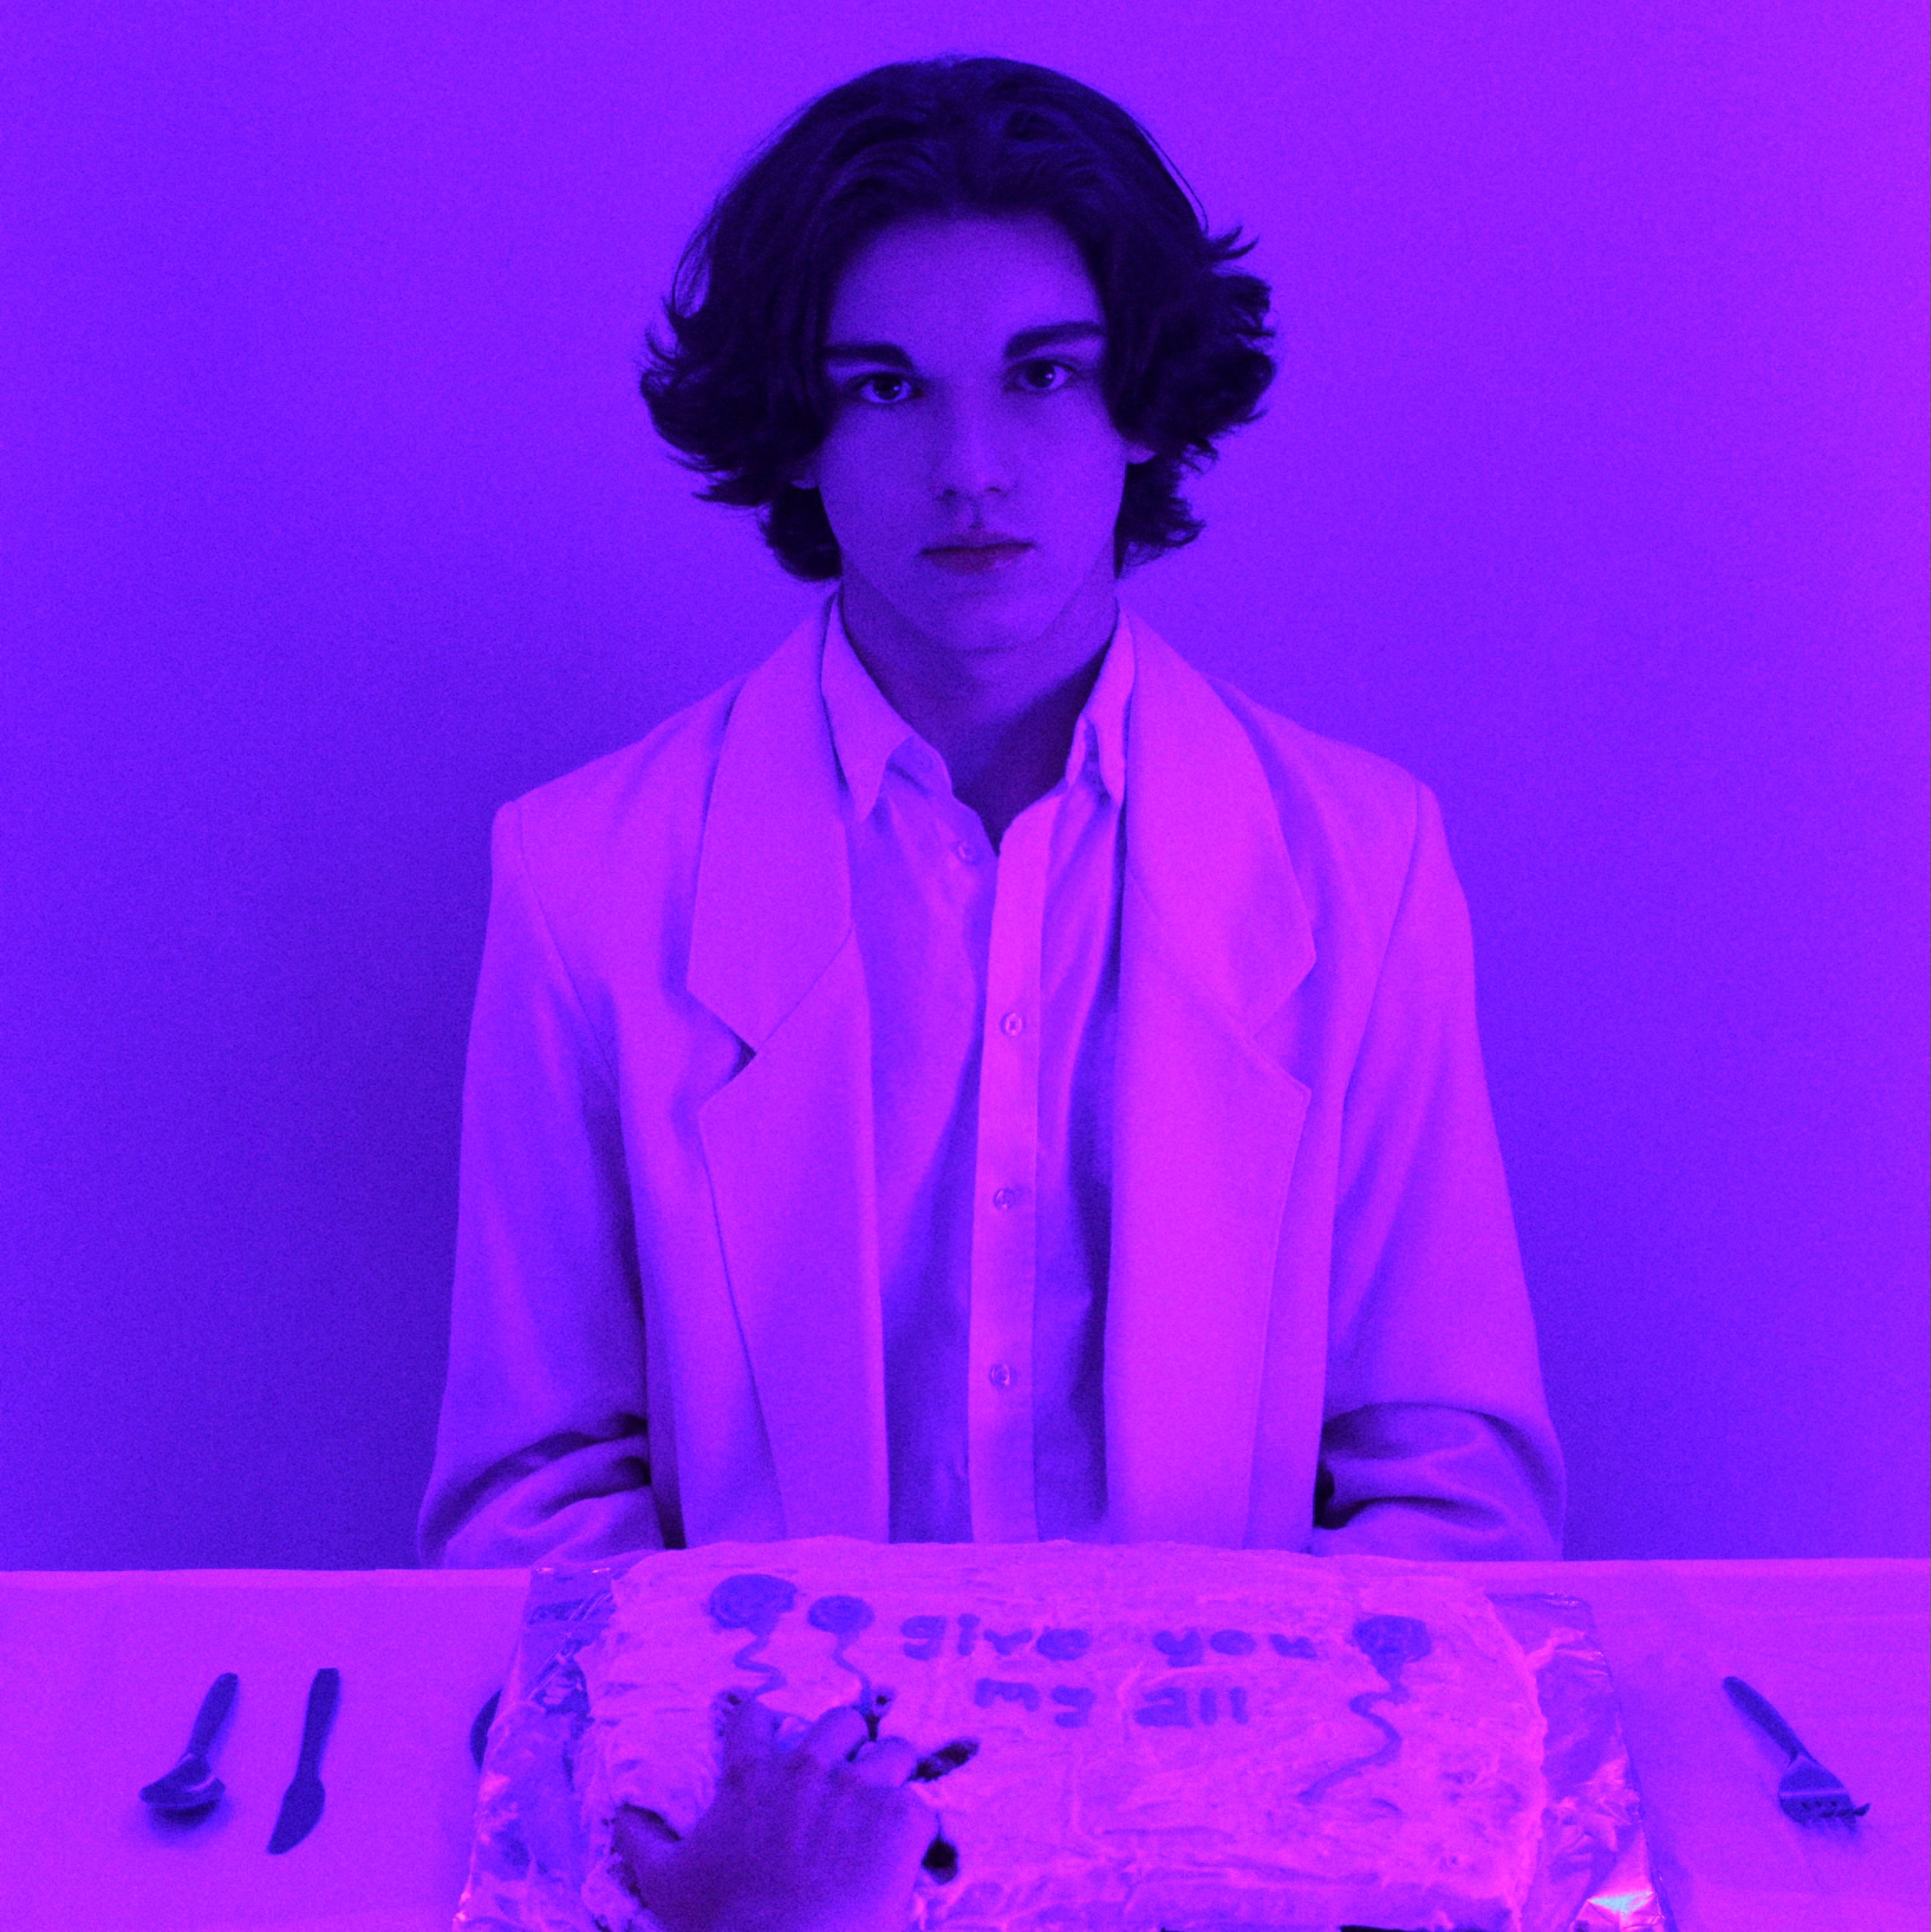 Blending Fusions of Creativity and Poignant Lyricism: Rising Pop Artist Jack Austin Unveils New Single Titled 'Give You My All'